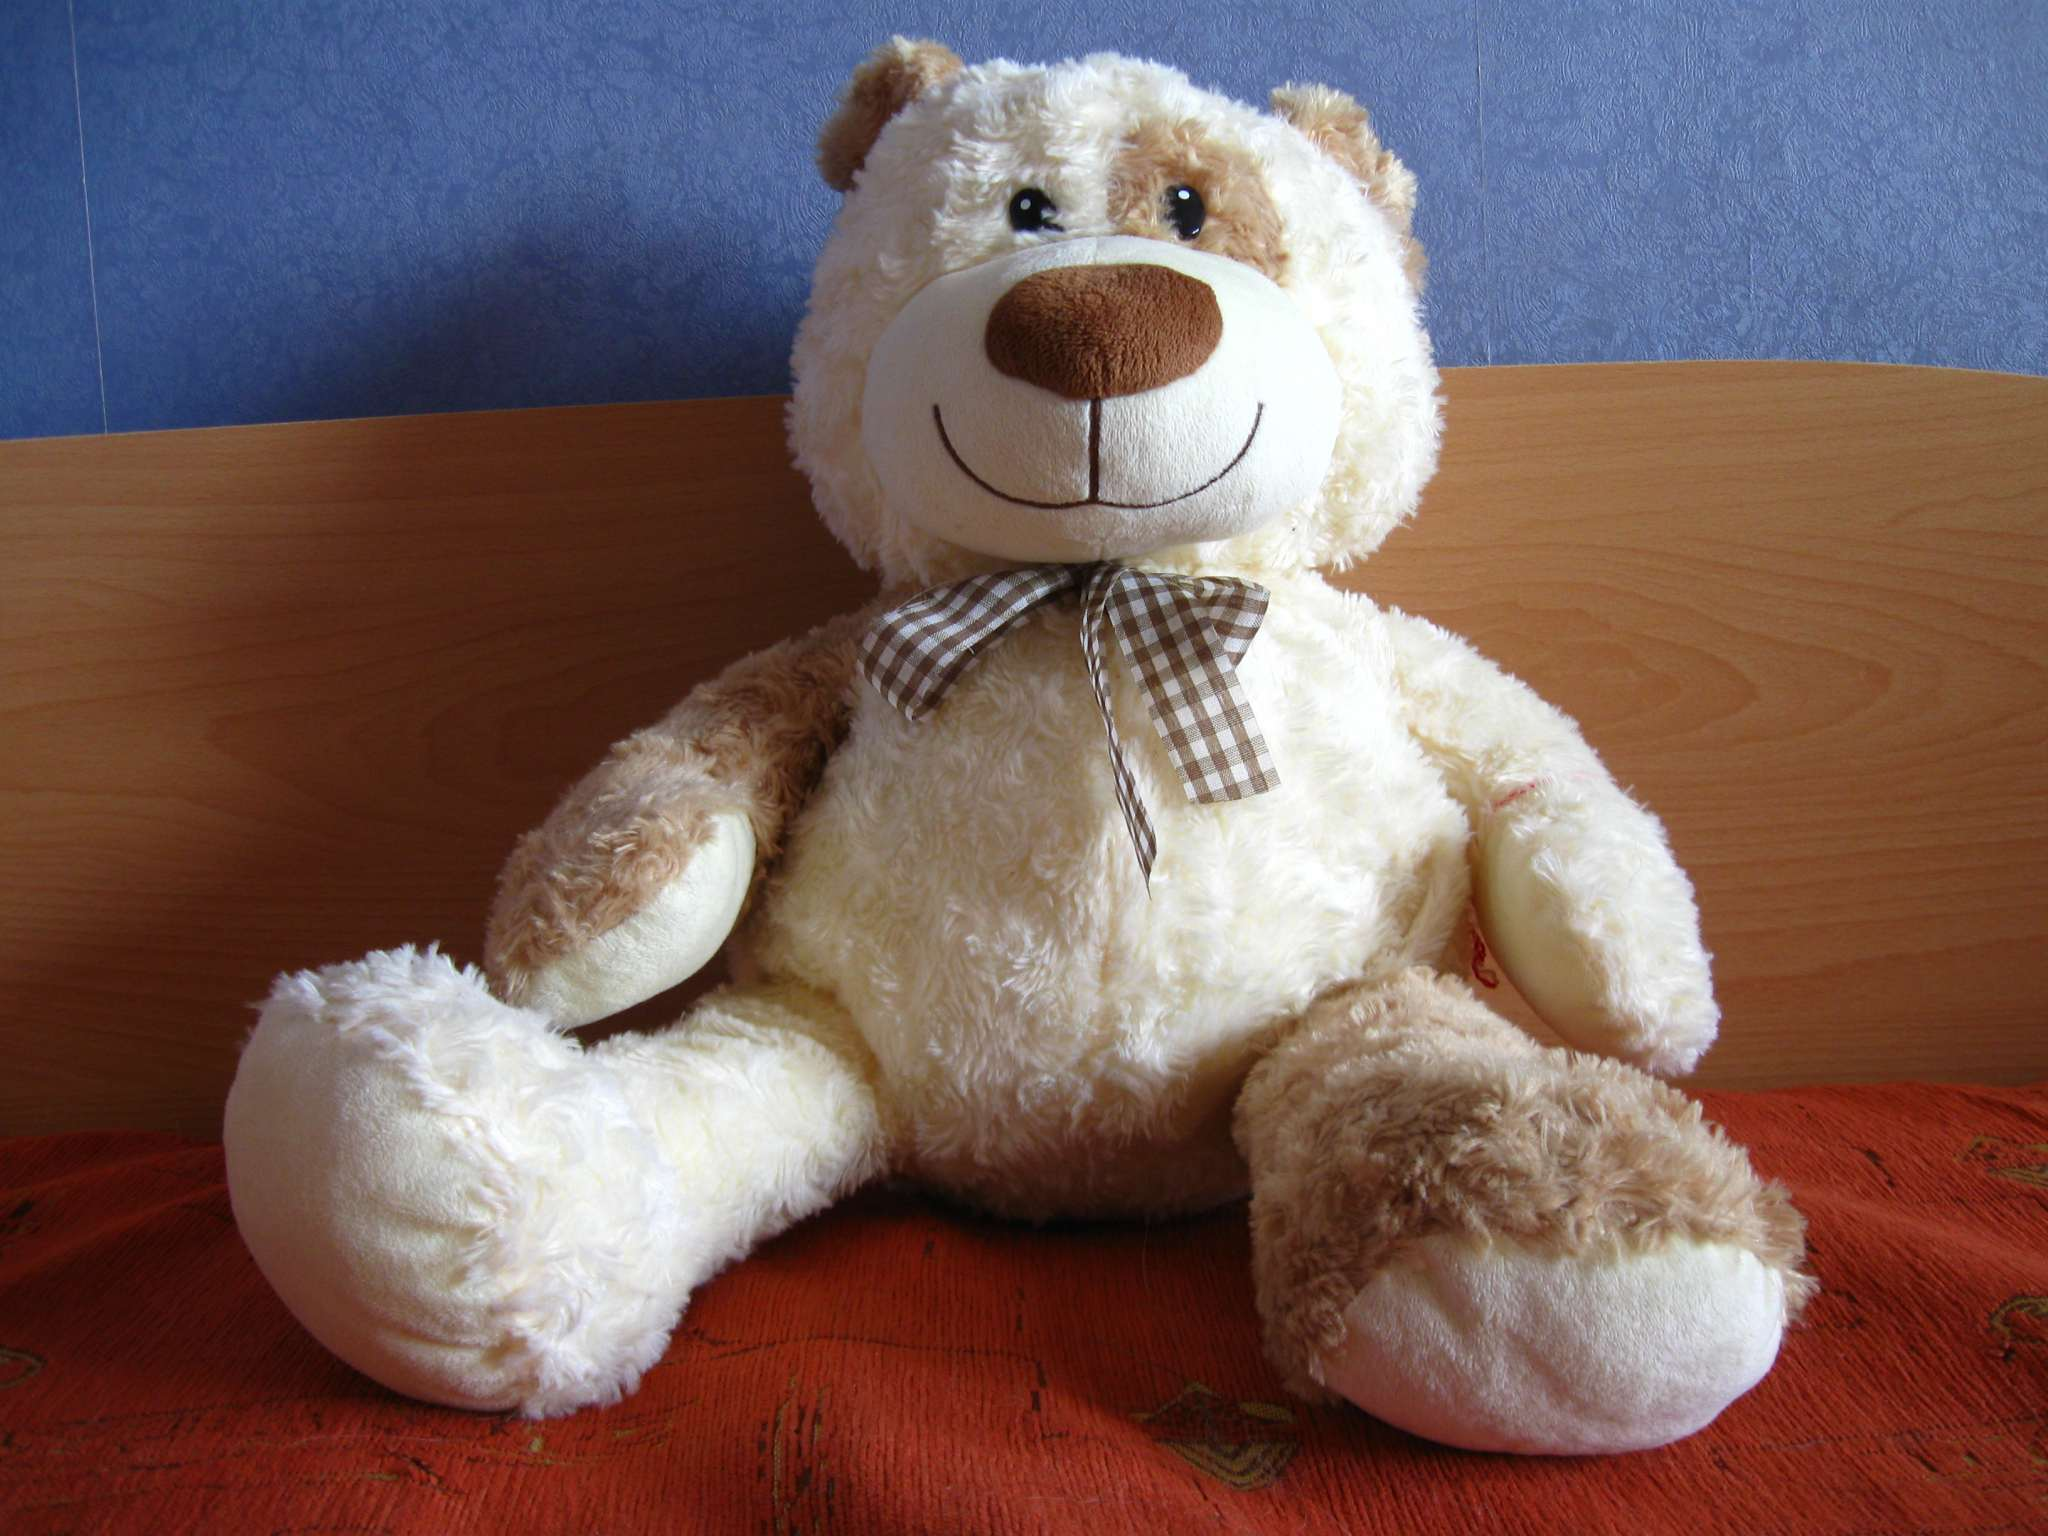 Is stuffed animals role play weird or cool  c5688654990f